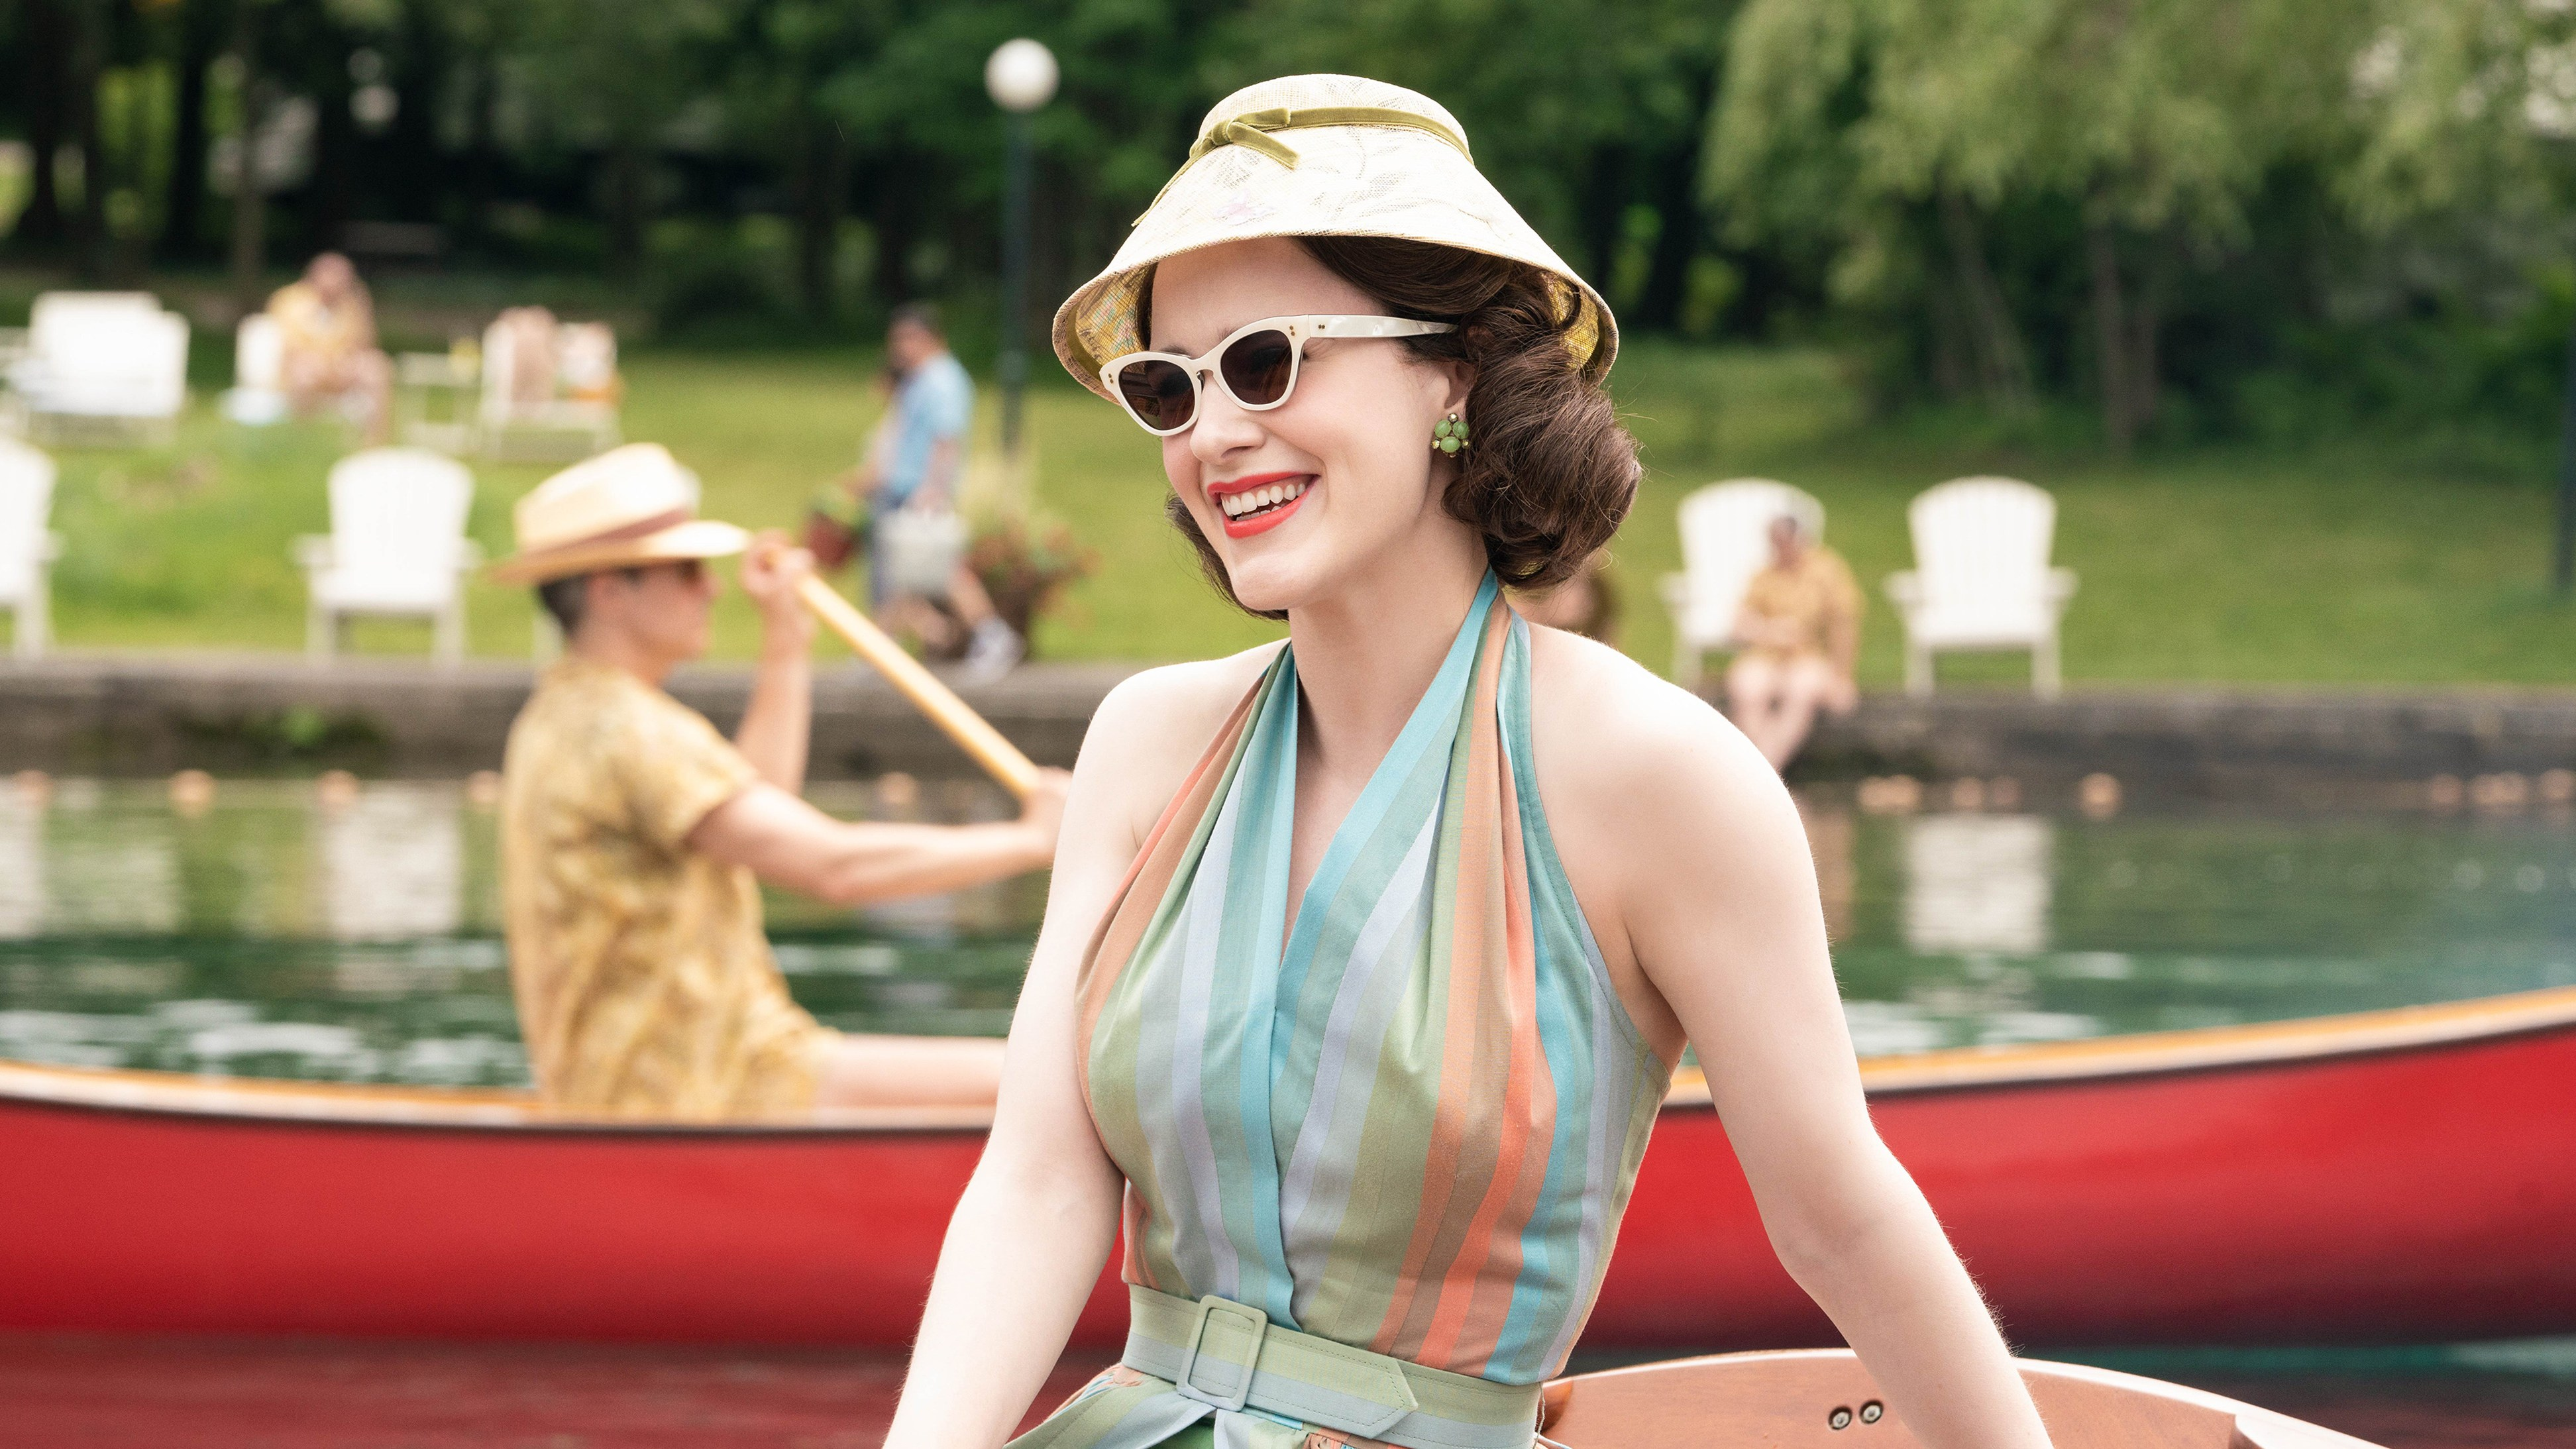 Marvelous-Mrs-Maisel-2 (6)